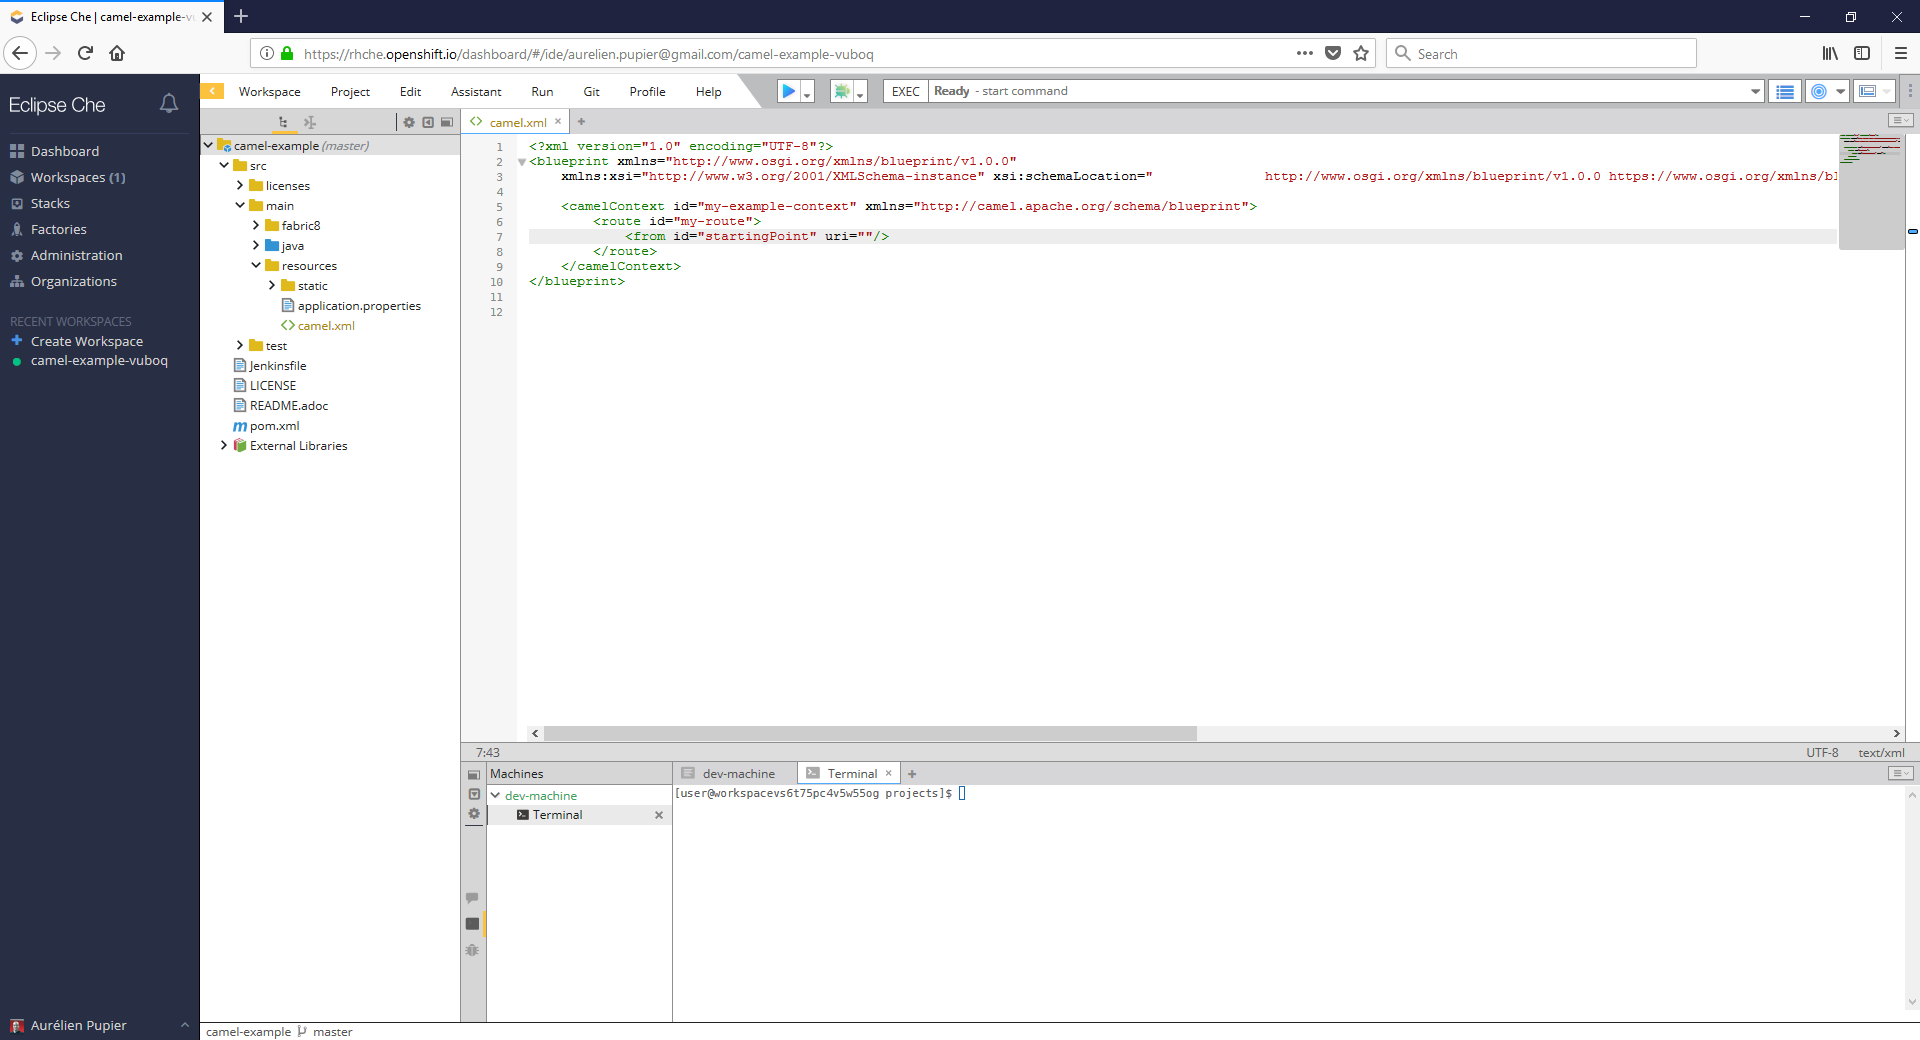 Apache camel uri completion easy installation for eclipse vs code click on the yellow top left arrow malvernweather Image collections